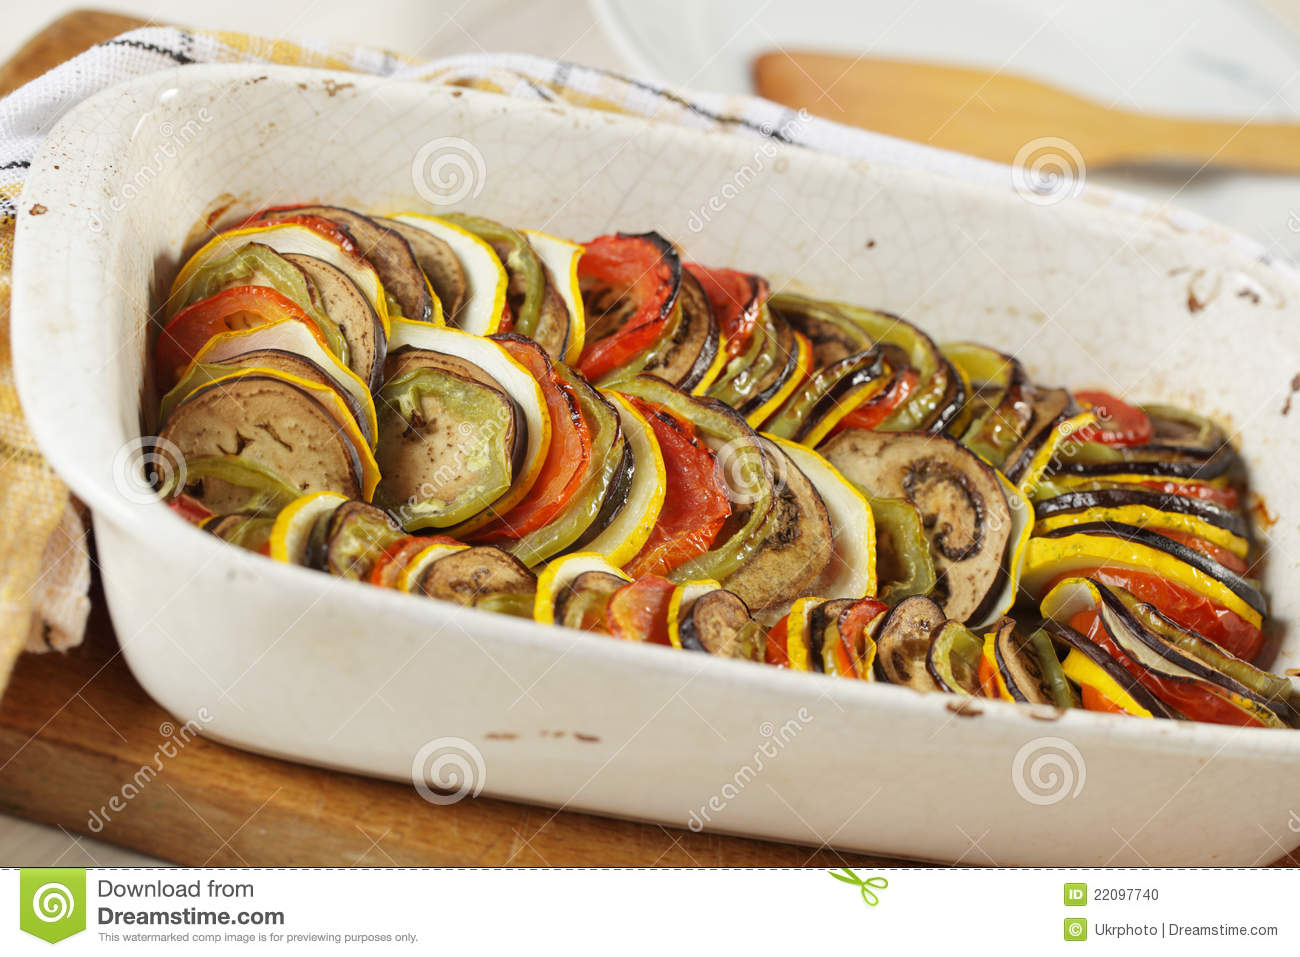 Ratatouille in white casserole on a rustic table.